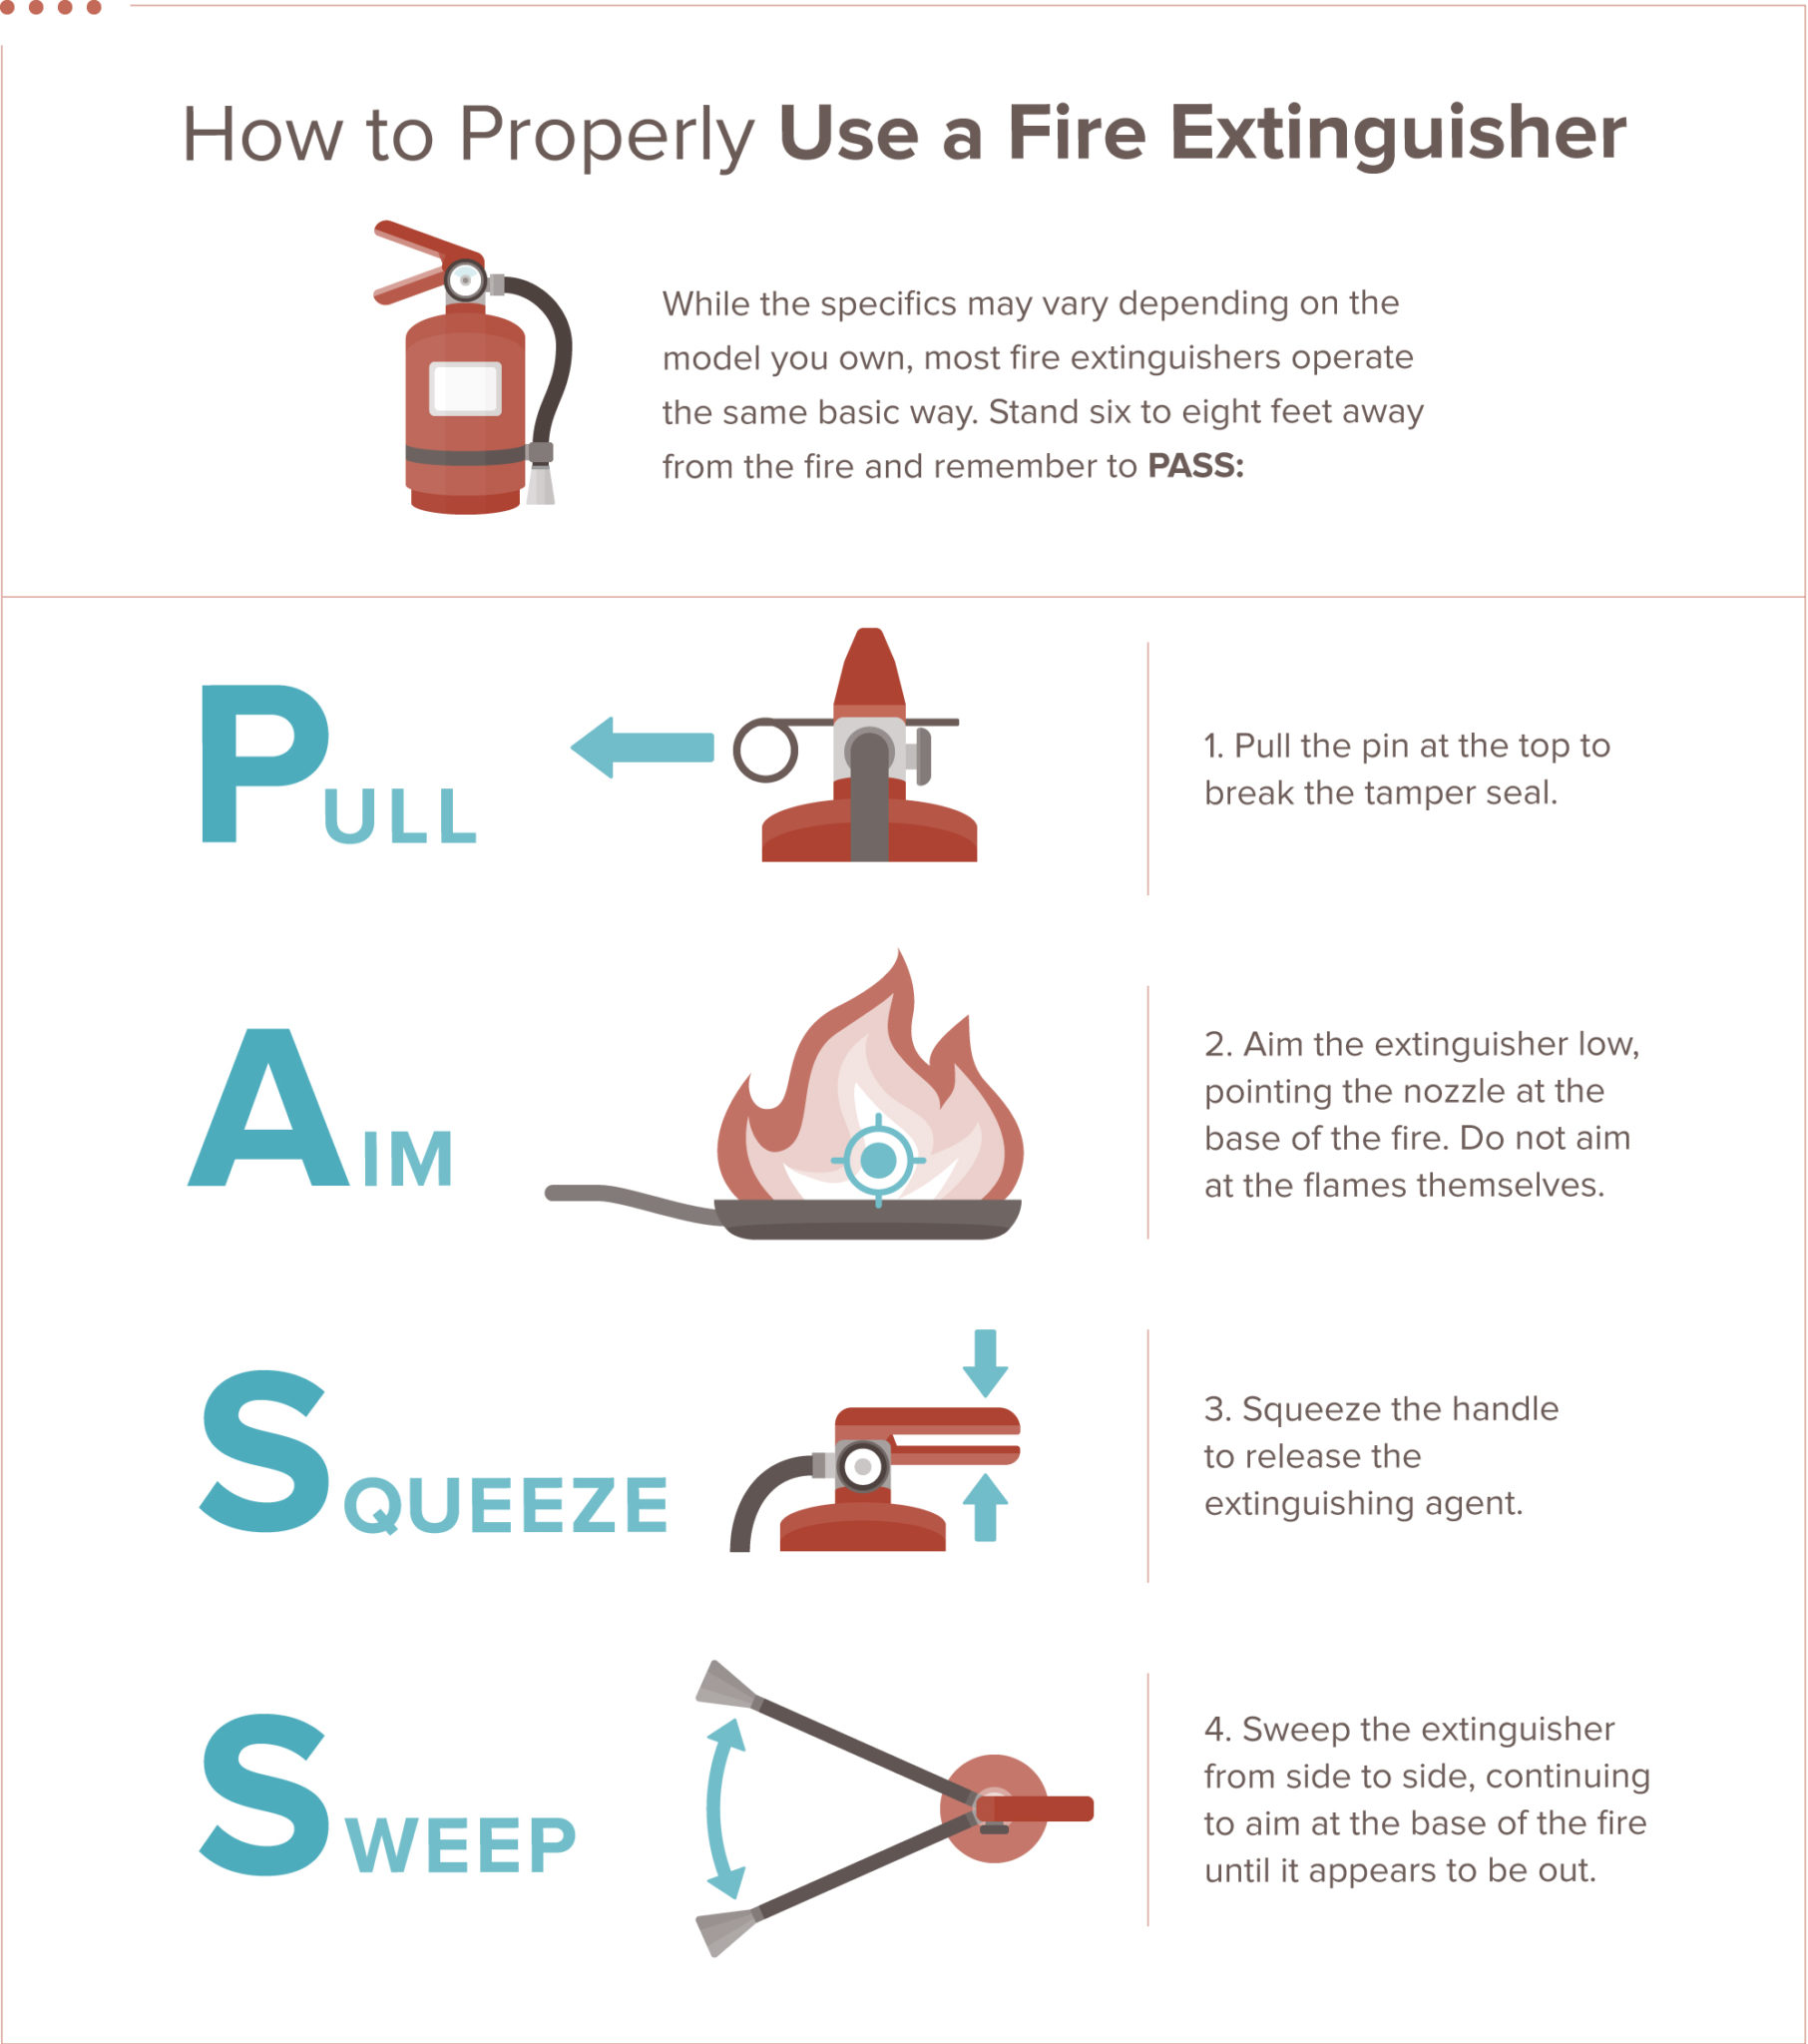 image with steps on how to use a fire extinguisher